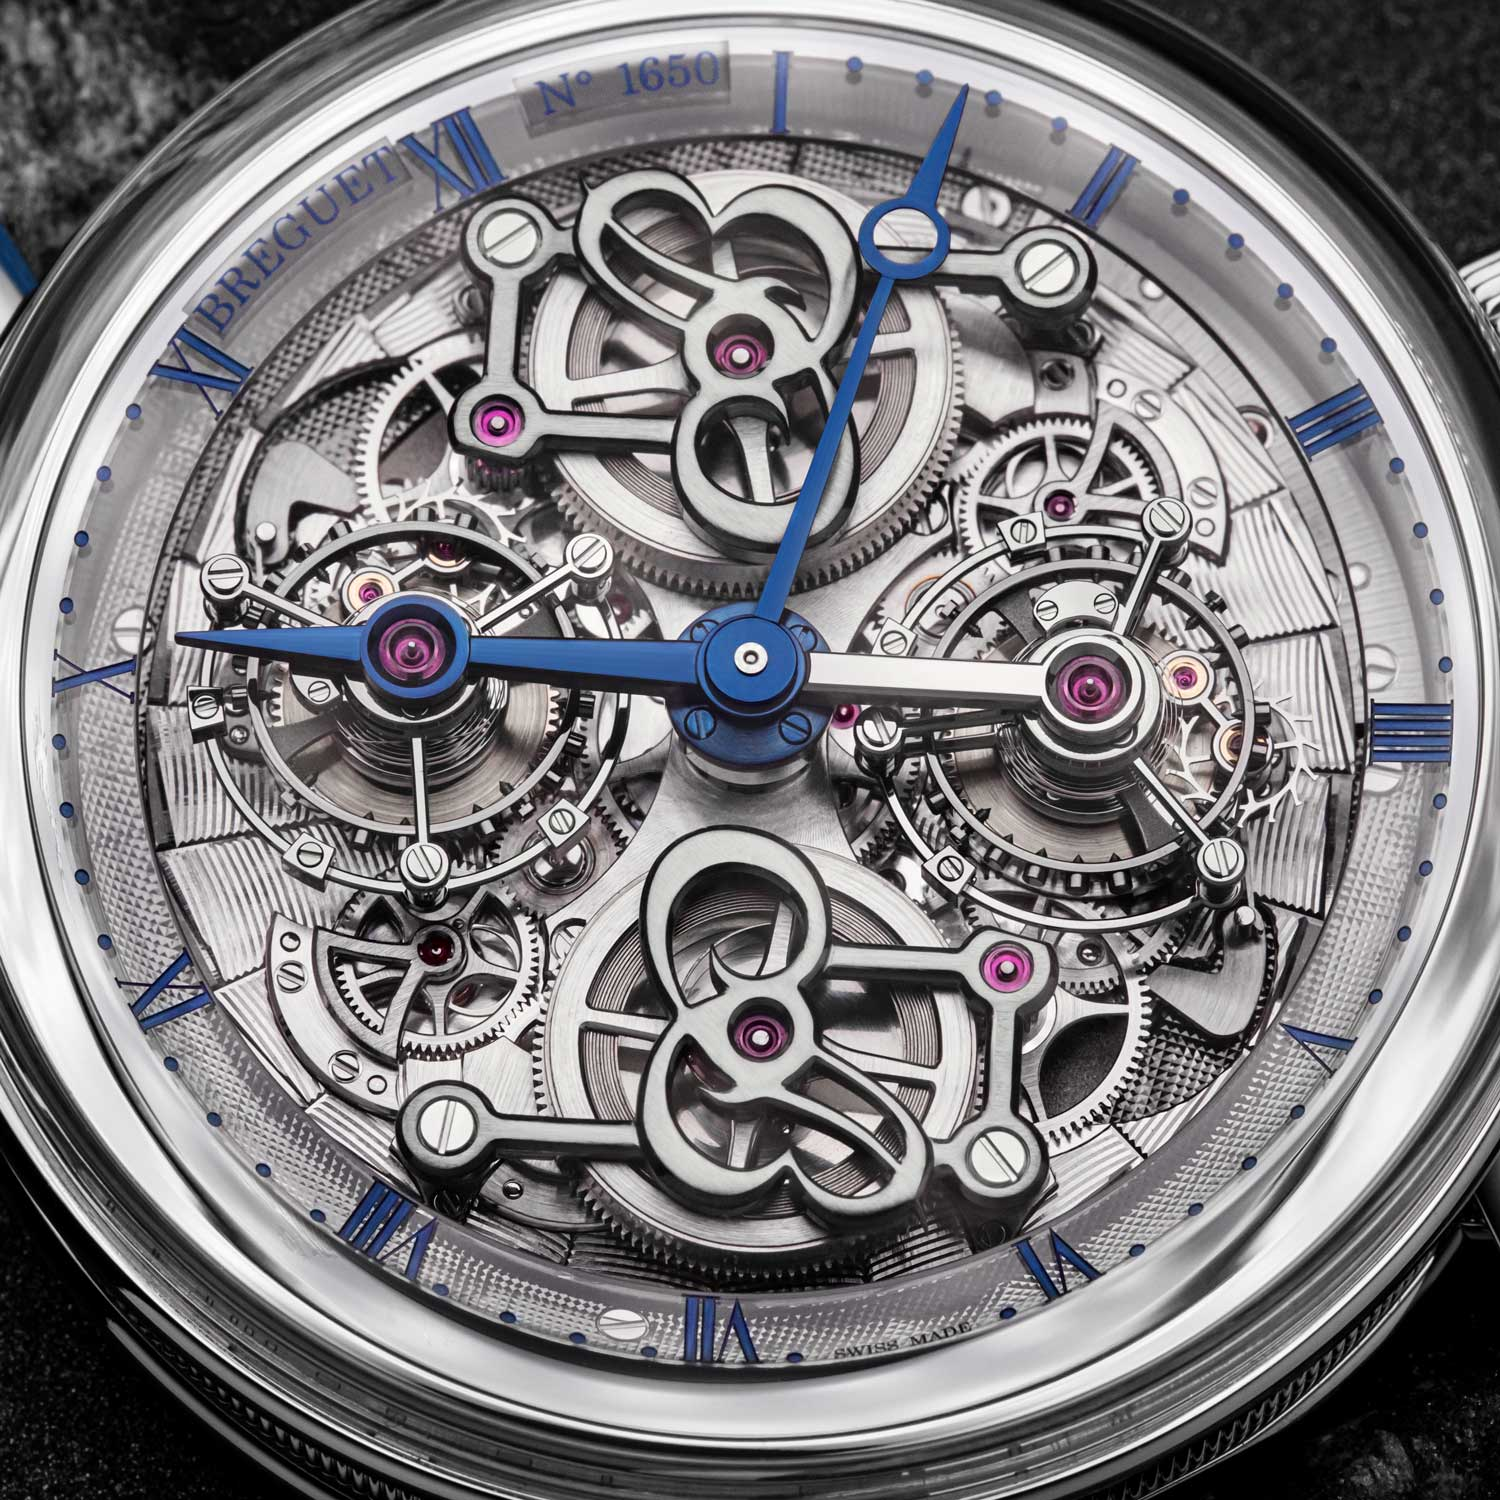 A close look at the dial — or the lack there of — the Breguet Classique Double Tourbillon 5345 Quai de L'horloge